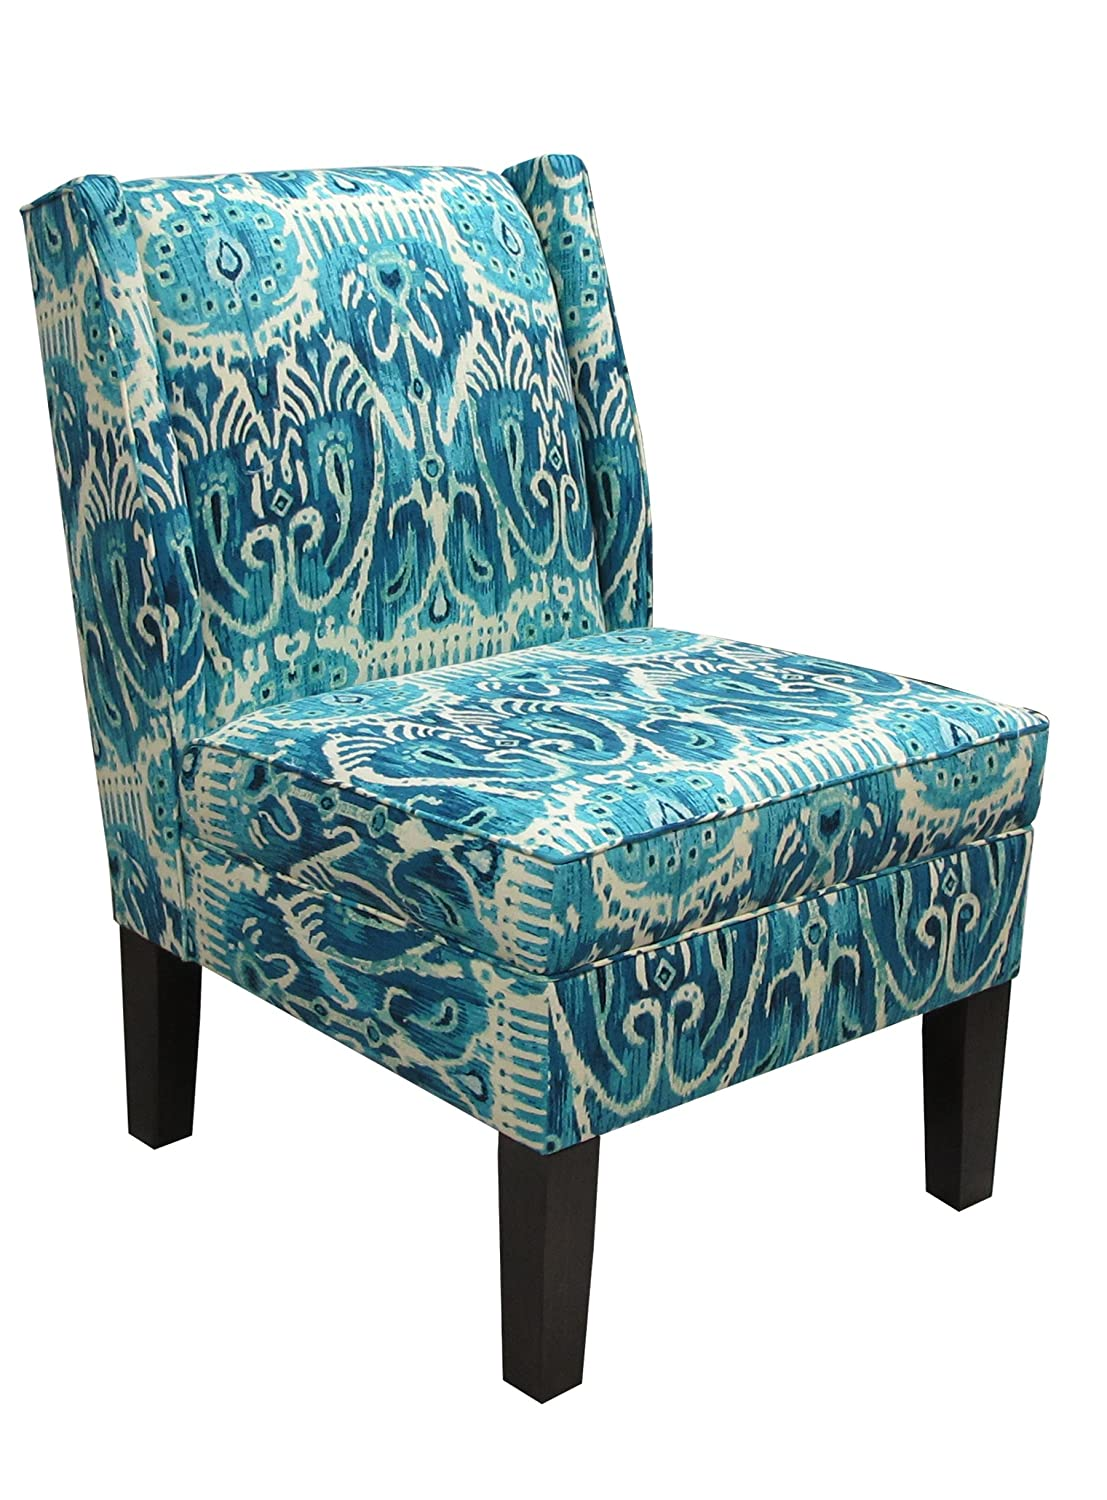 Teal Chair Turquoise Chair Lifestylebargain